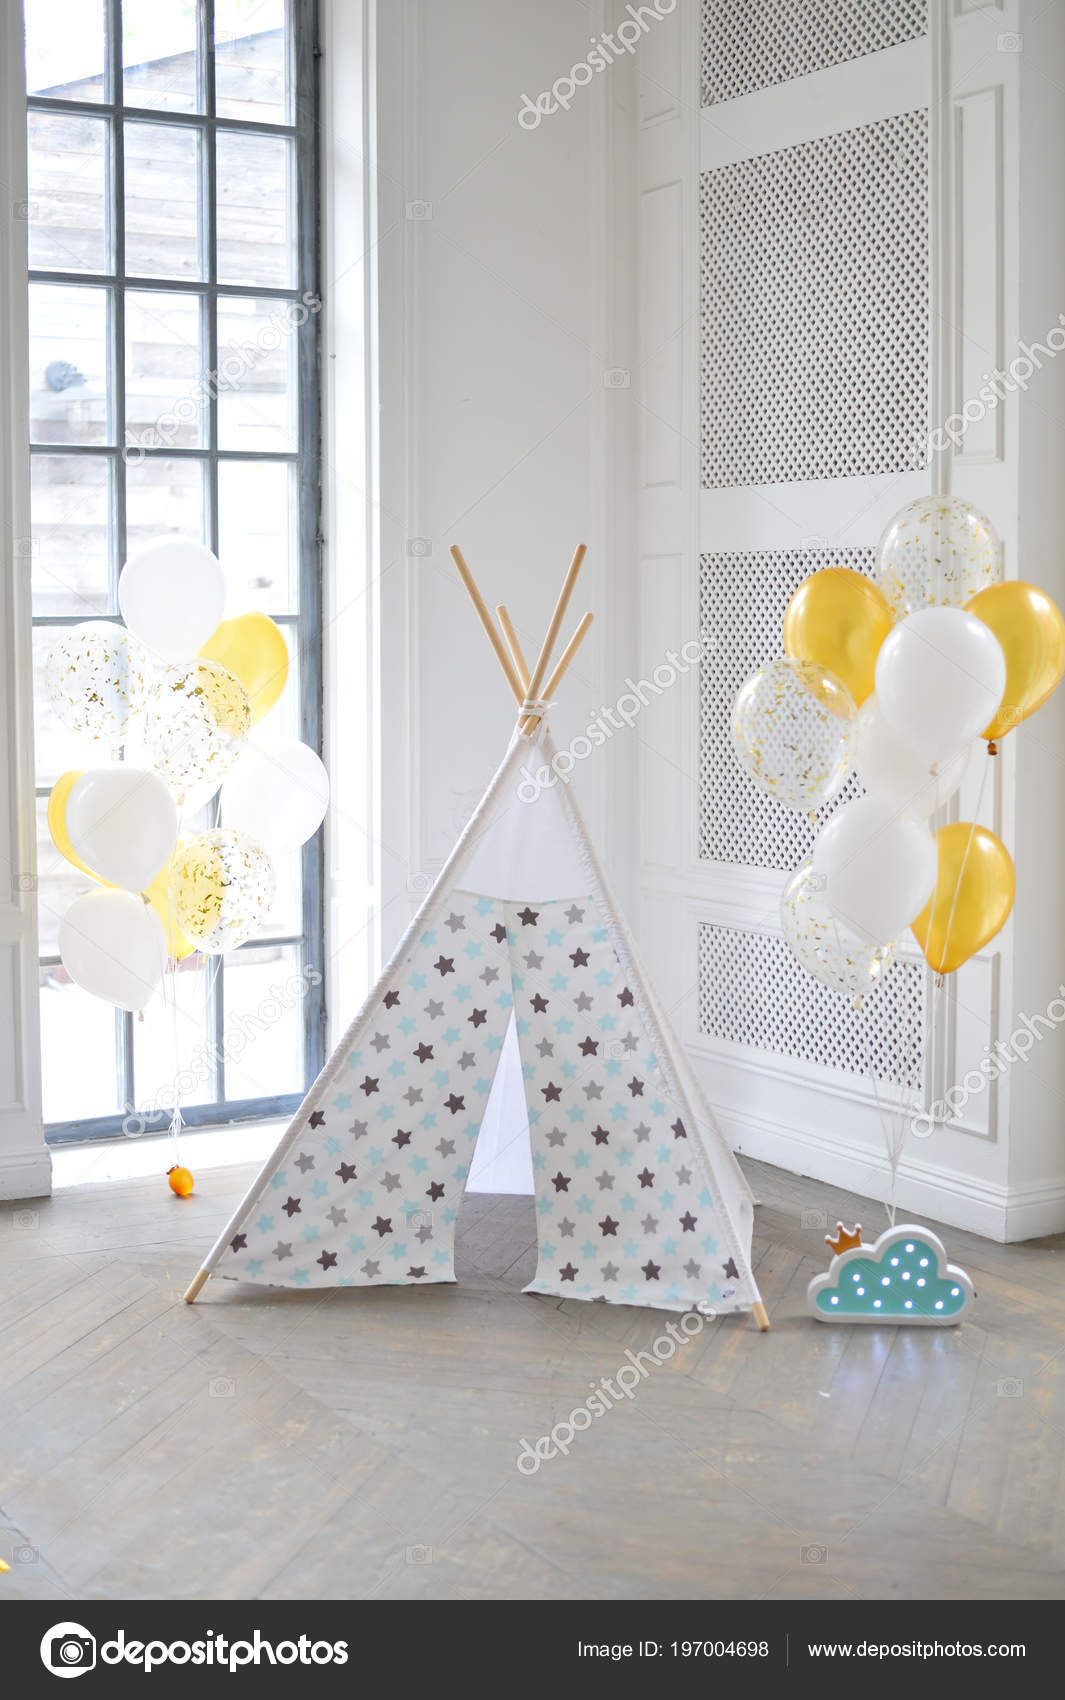 Twins Party Decorations Birthday Party Lot Balloons Gold White